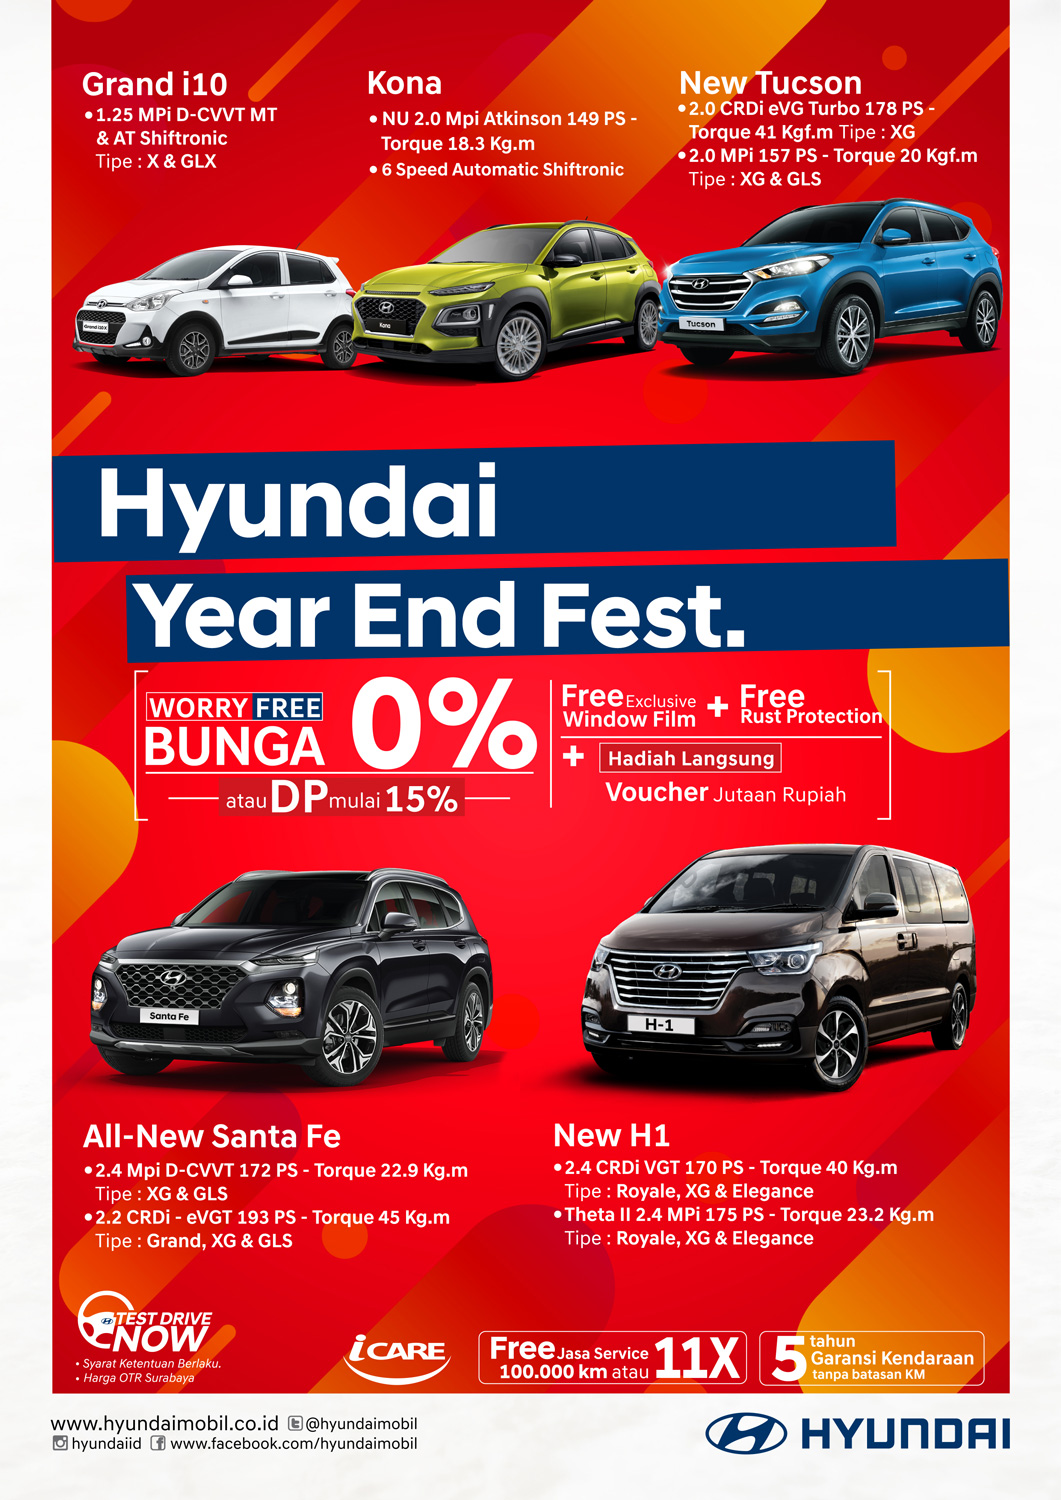 Hyundai Year End Fest 2019